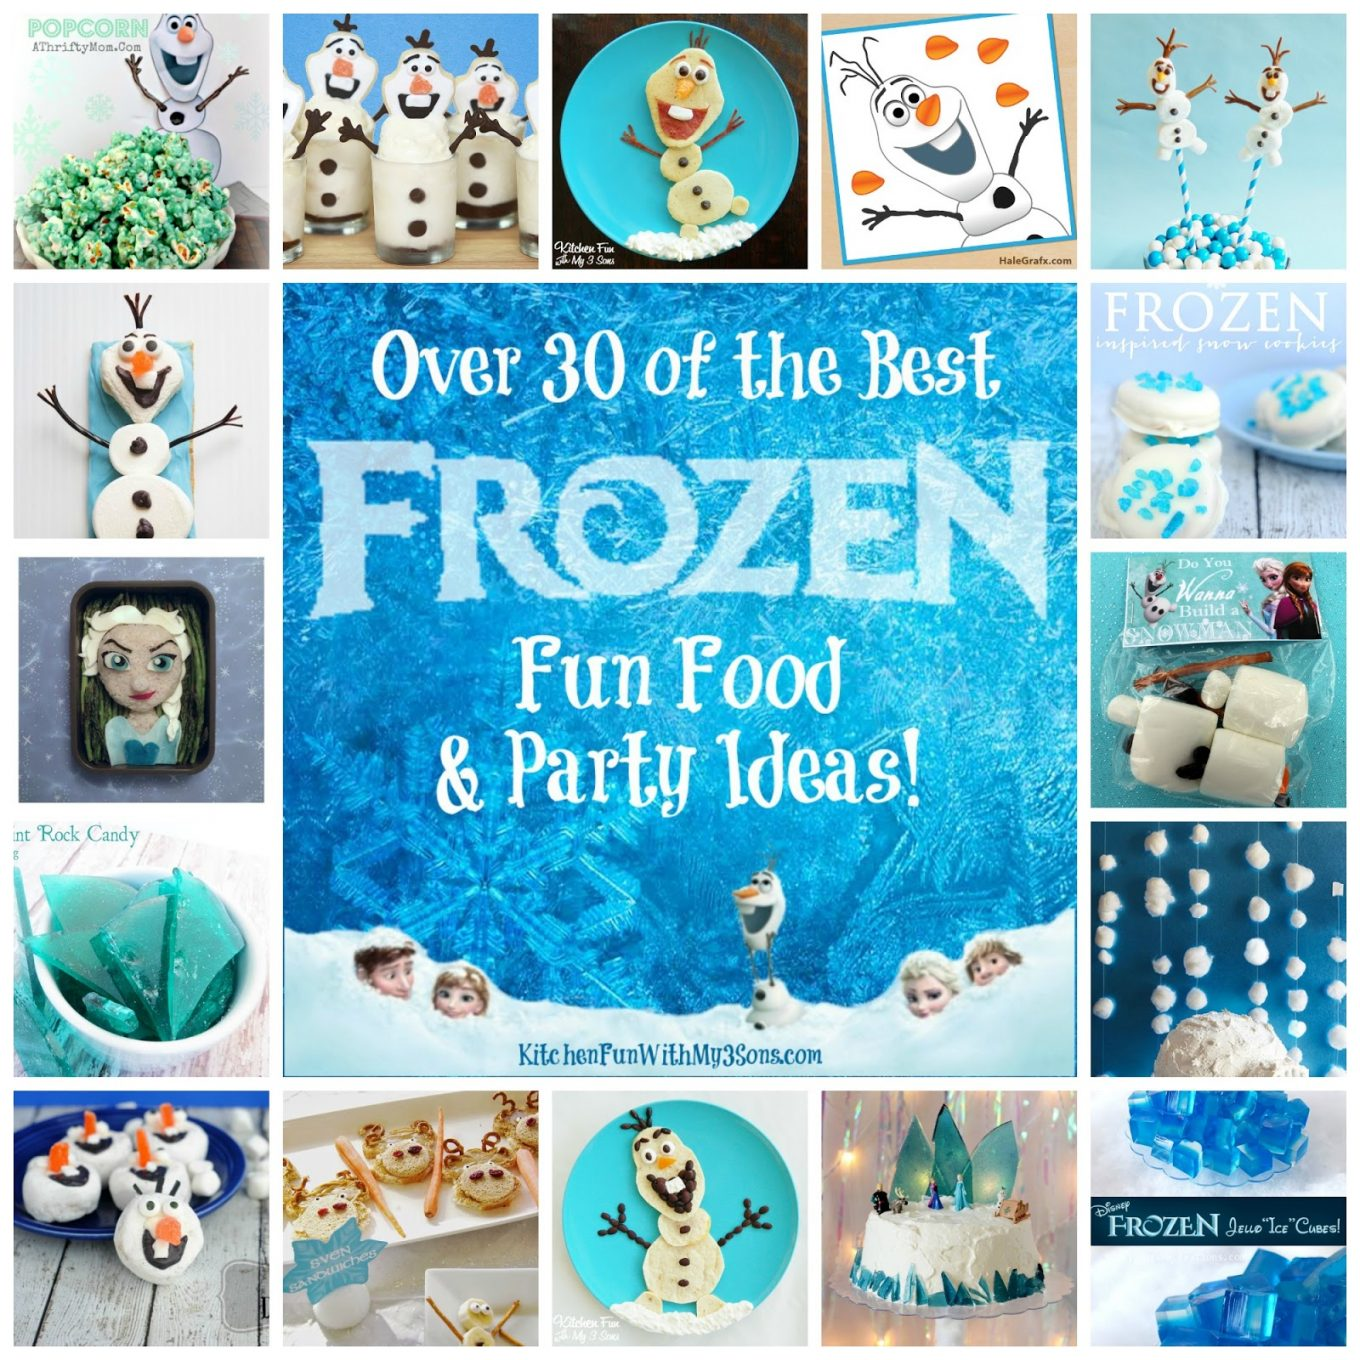 Over 30 of the BEST Frozen Party Ideas! - Kitchen Fun With My 3 Sons